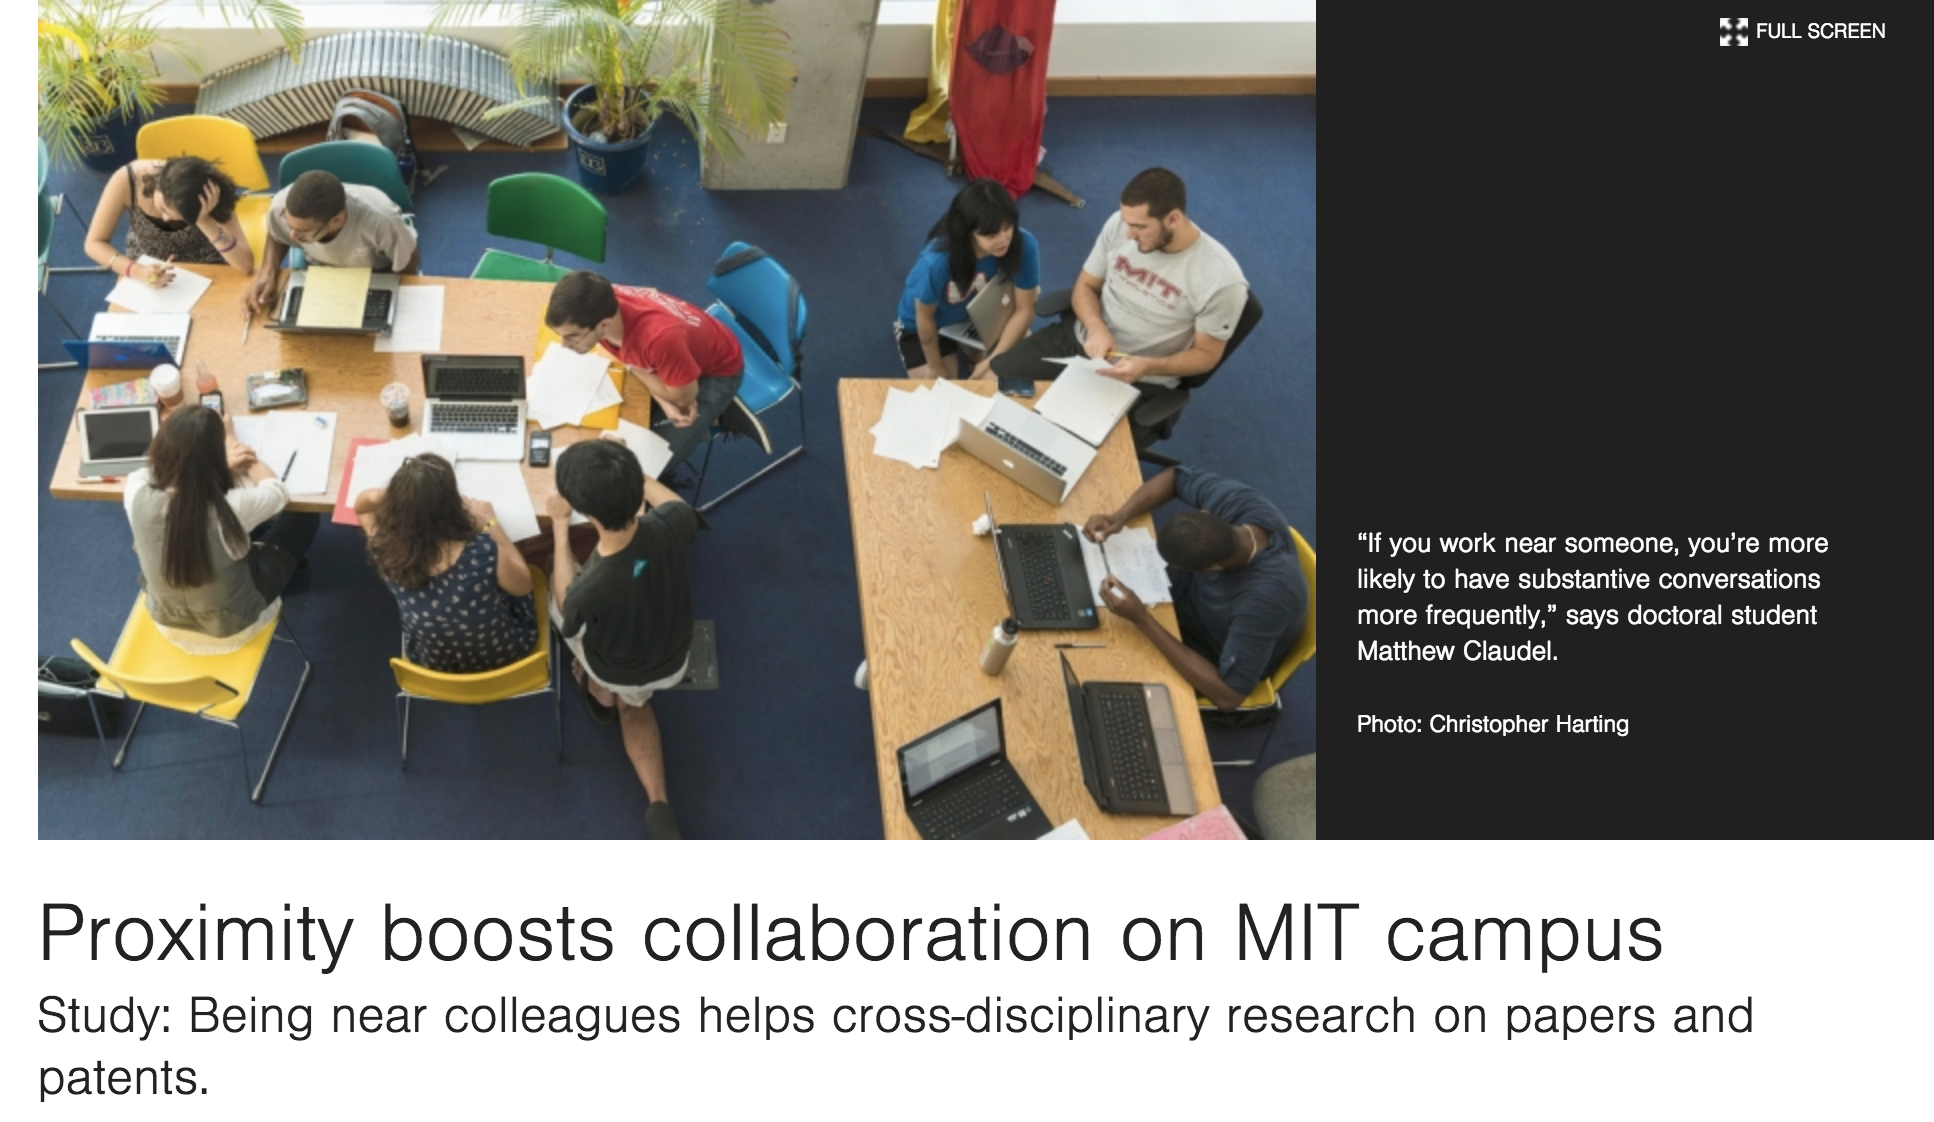 Further Reading: Proximity boosts collaboration on MIT campus